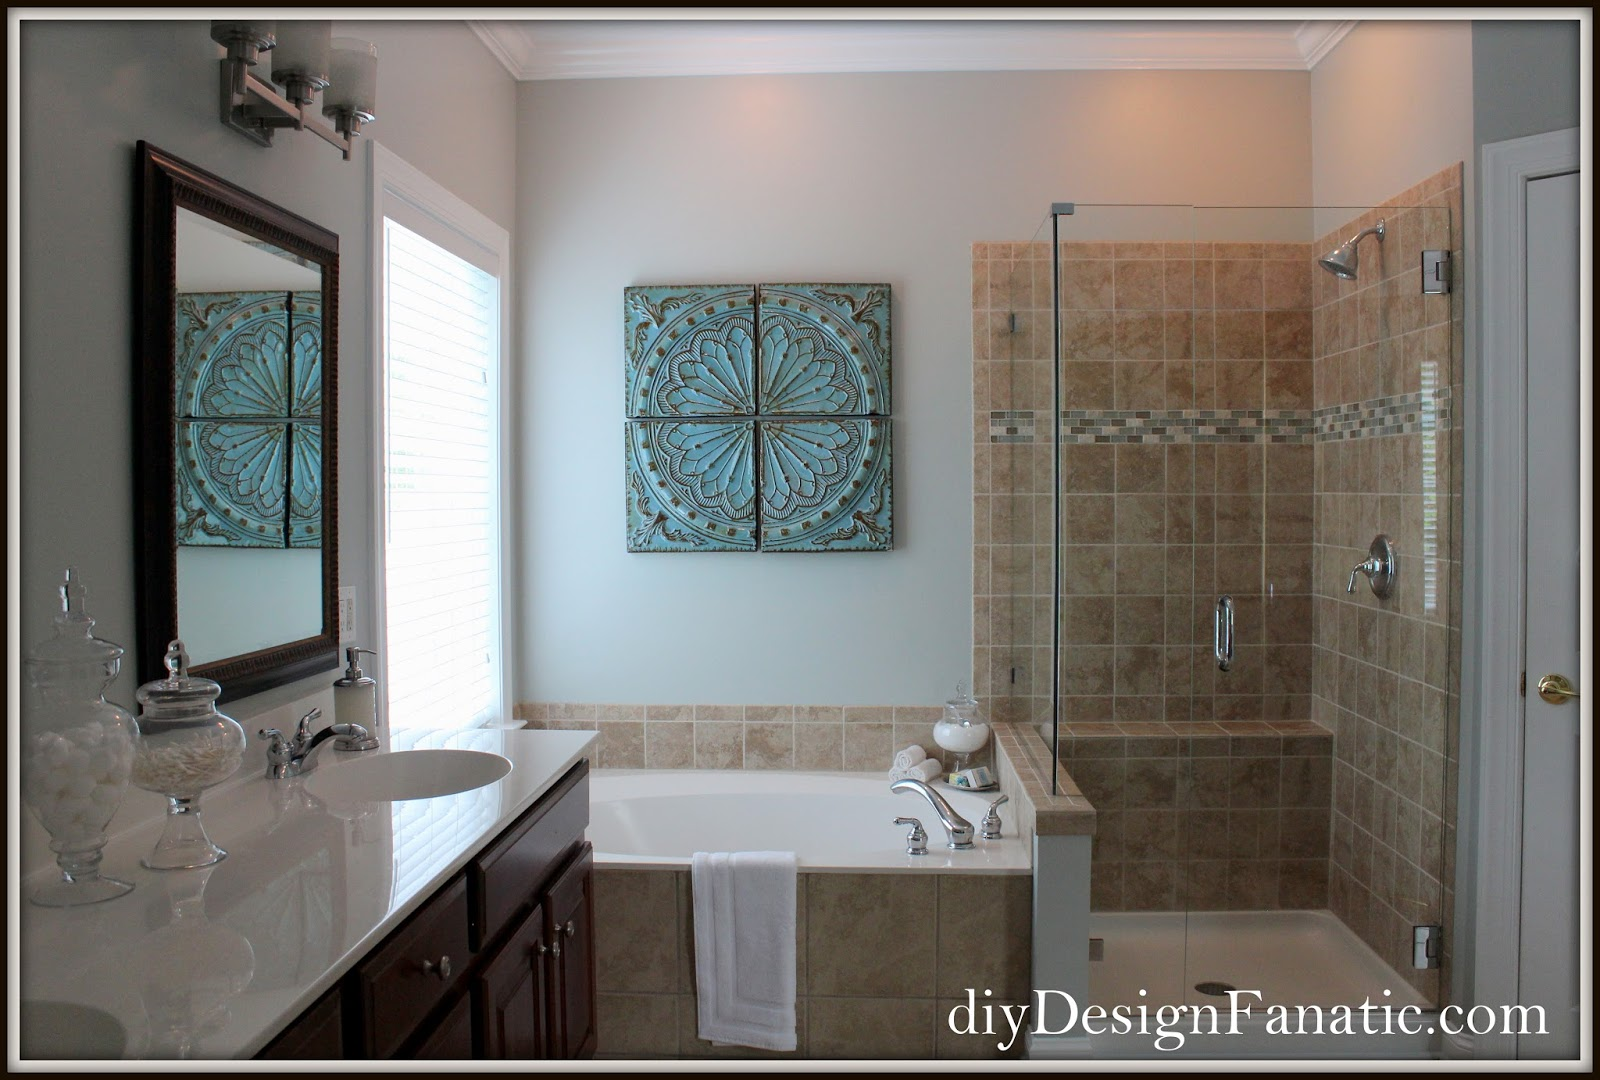 diy Design Fanatic: Master Bath Update